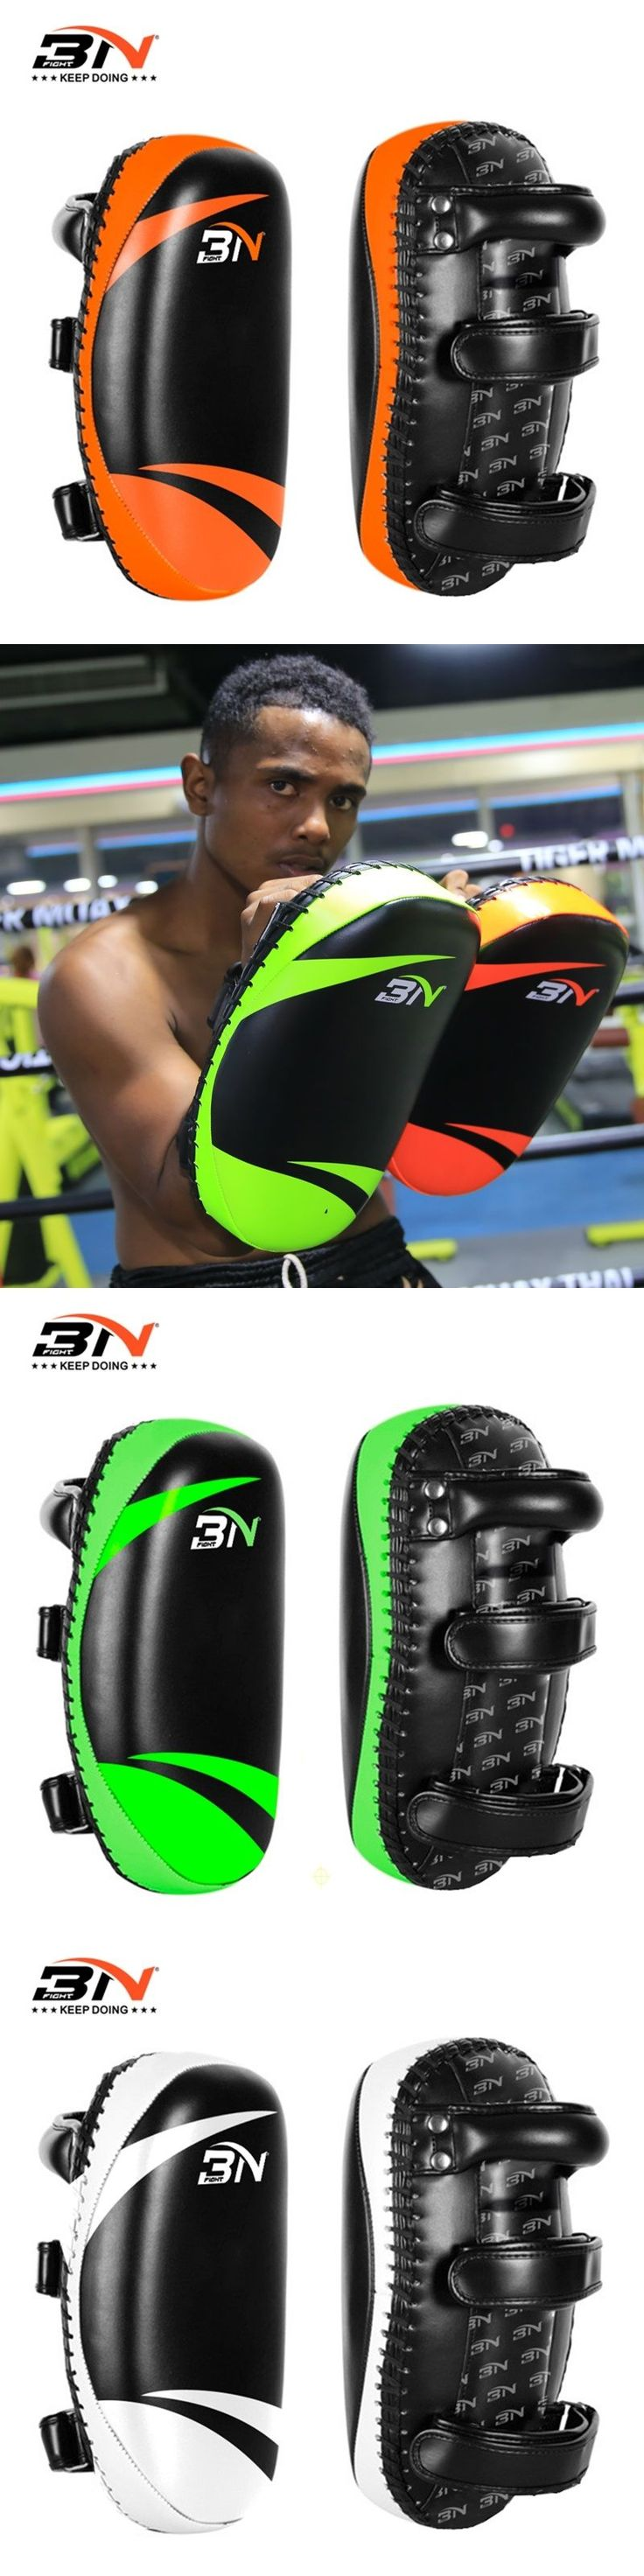 1 piece BN boxing Pads Professional PU LEATHER mma kick pads focus pads Taekwondo sanda thai  Training fitness equipment